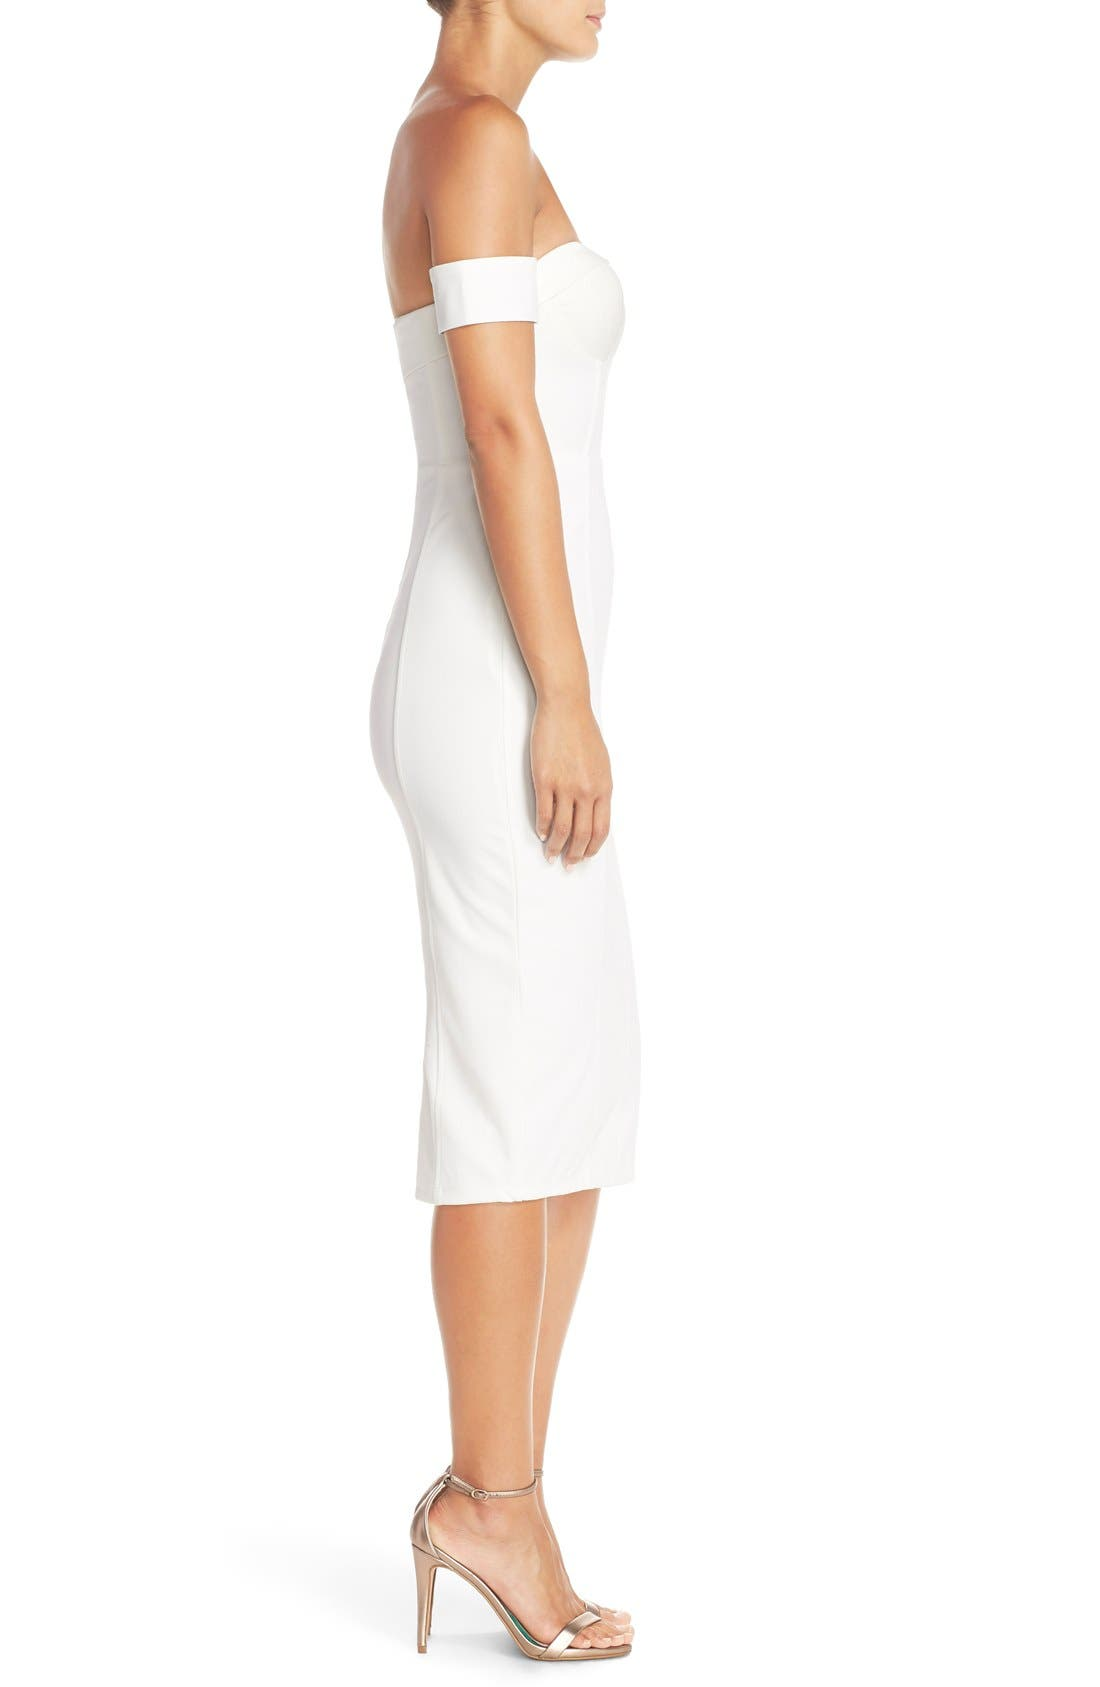 MishaCollection 'Chloe' Off the Shoulder Stretch Midi Dress,                             Alternate thumbnail 4, color,                             901